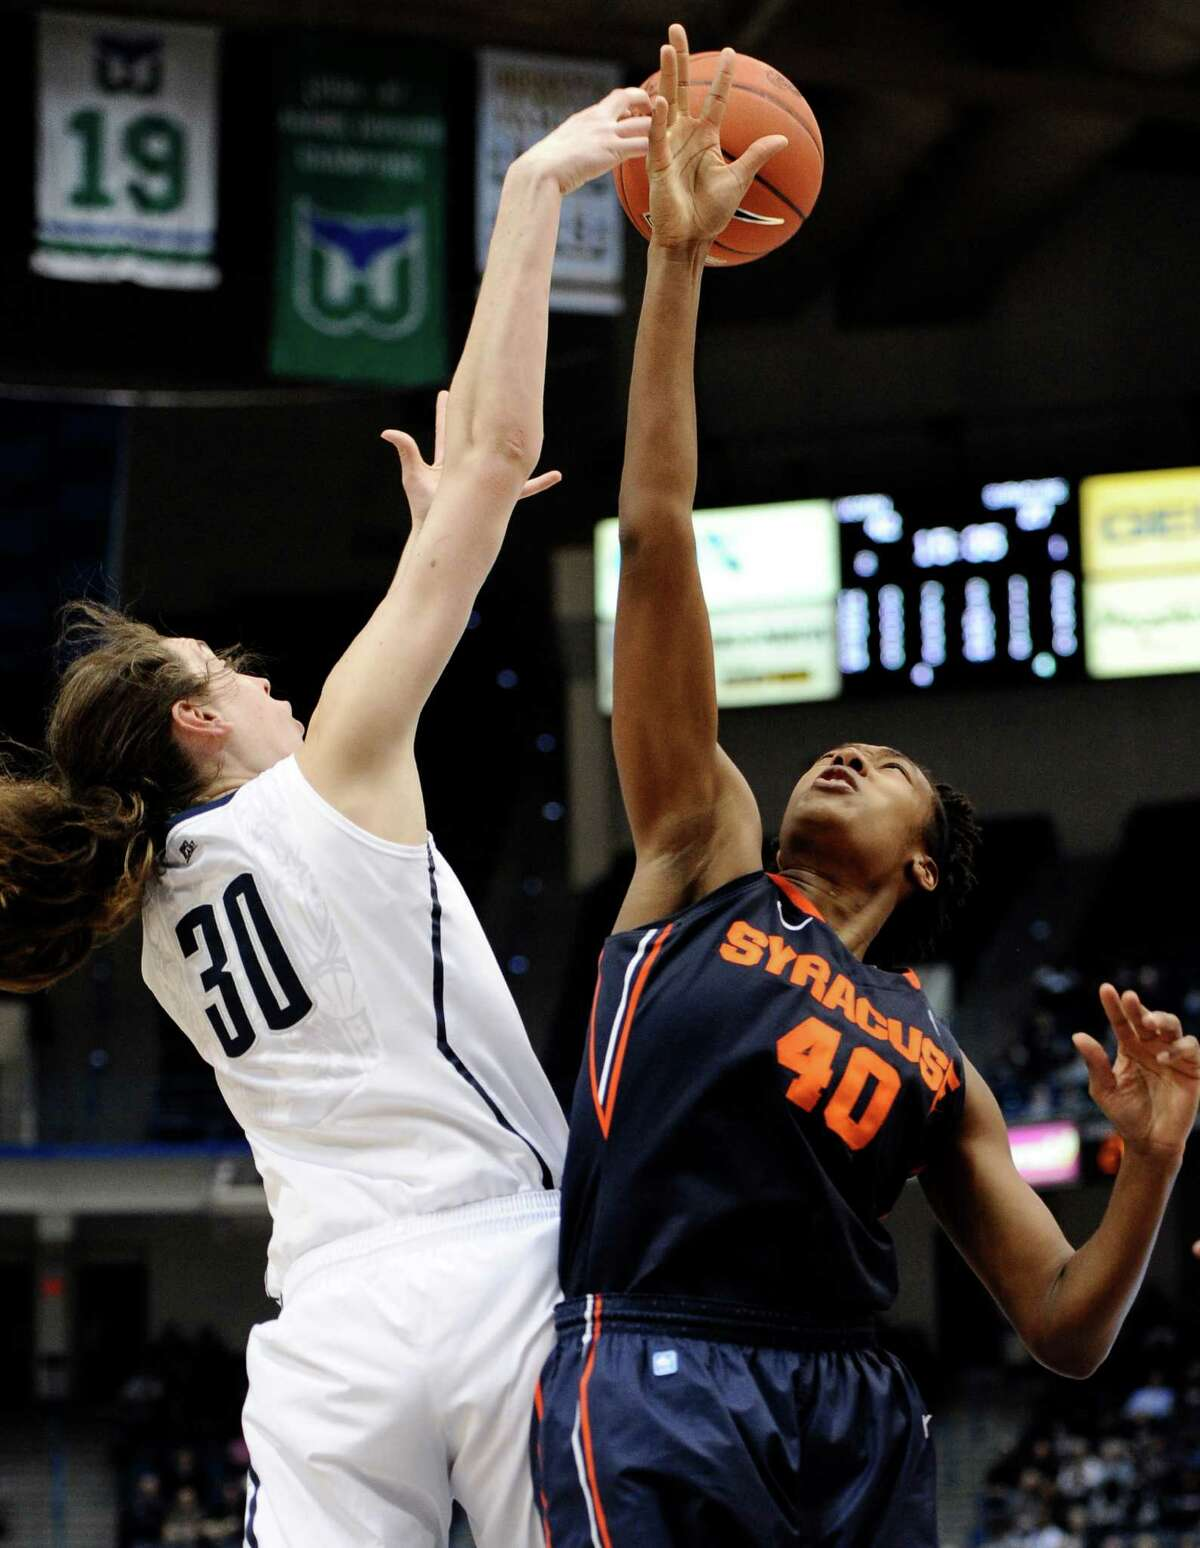 Connecticut's Breanna Stewart, left, and Syracuse's Kayla Alexander fight for a rebound in the second half of an NCAA college basketball game in the semifinals of the Big East Conference women's tournament in Hartford, Conn., Monday, March 11, 2013. (AP Photo/Jessica Hill)